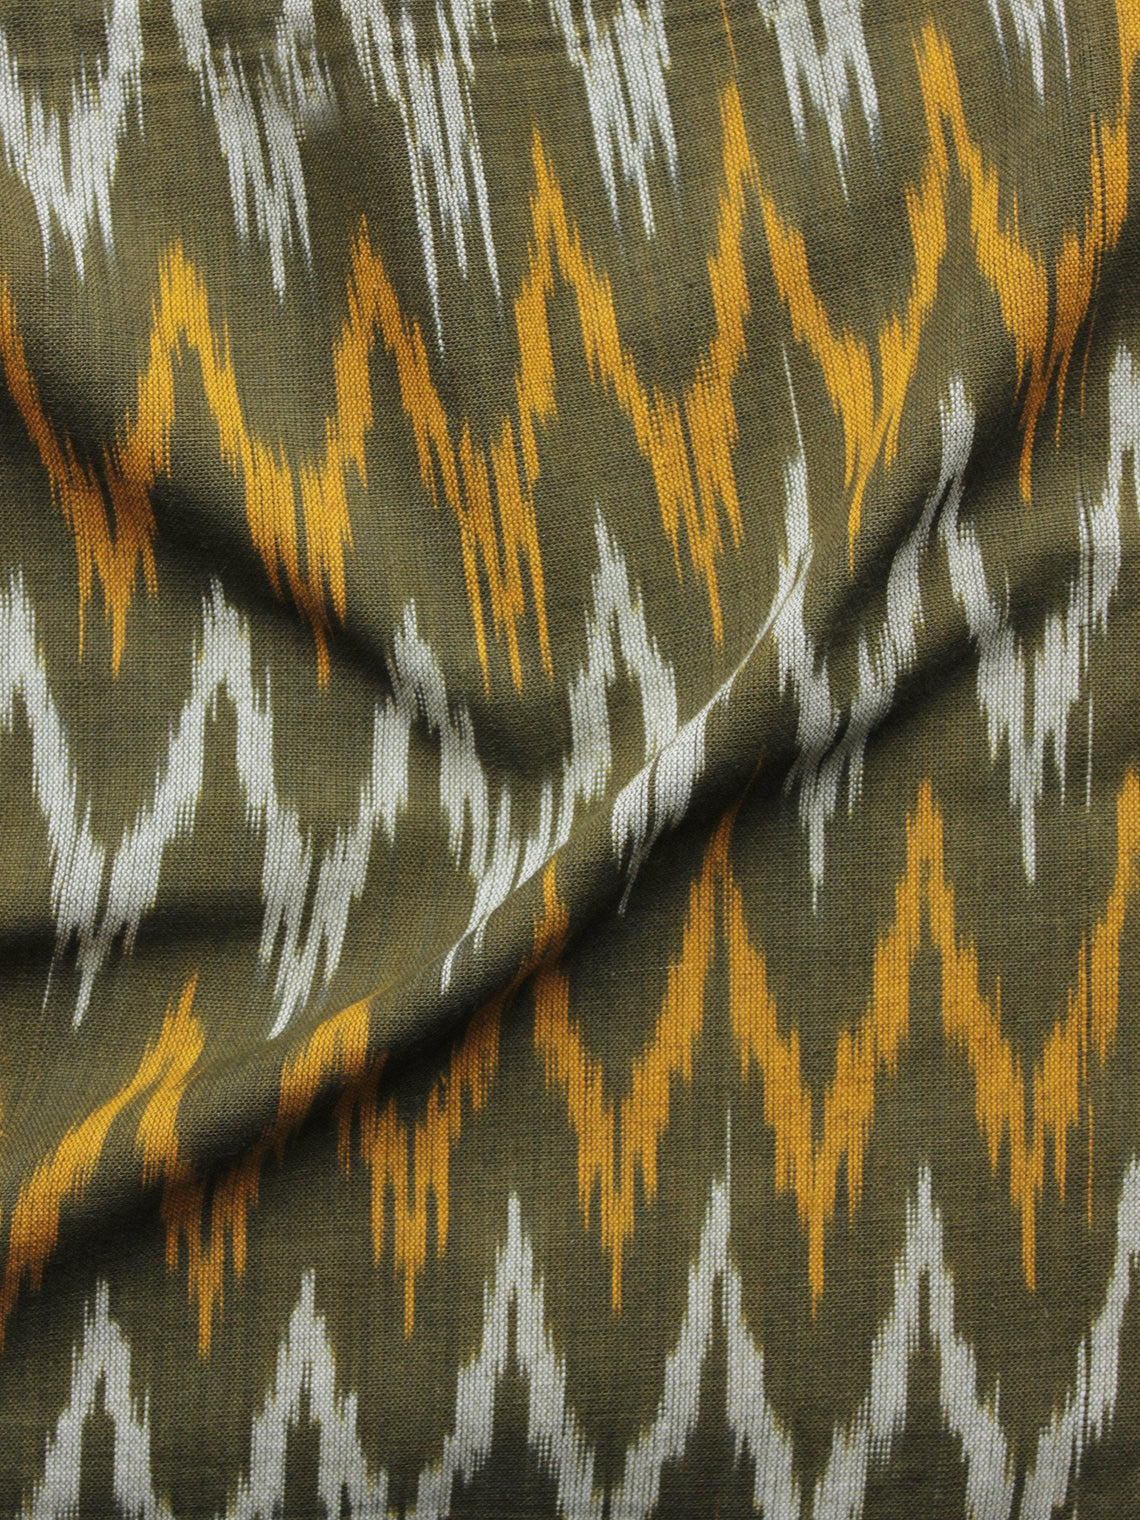 Olive Green Ivory Orange Pochampally Hand Woven Ikat Fabric Per Meter - F002F913